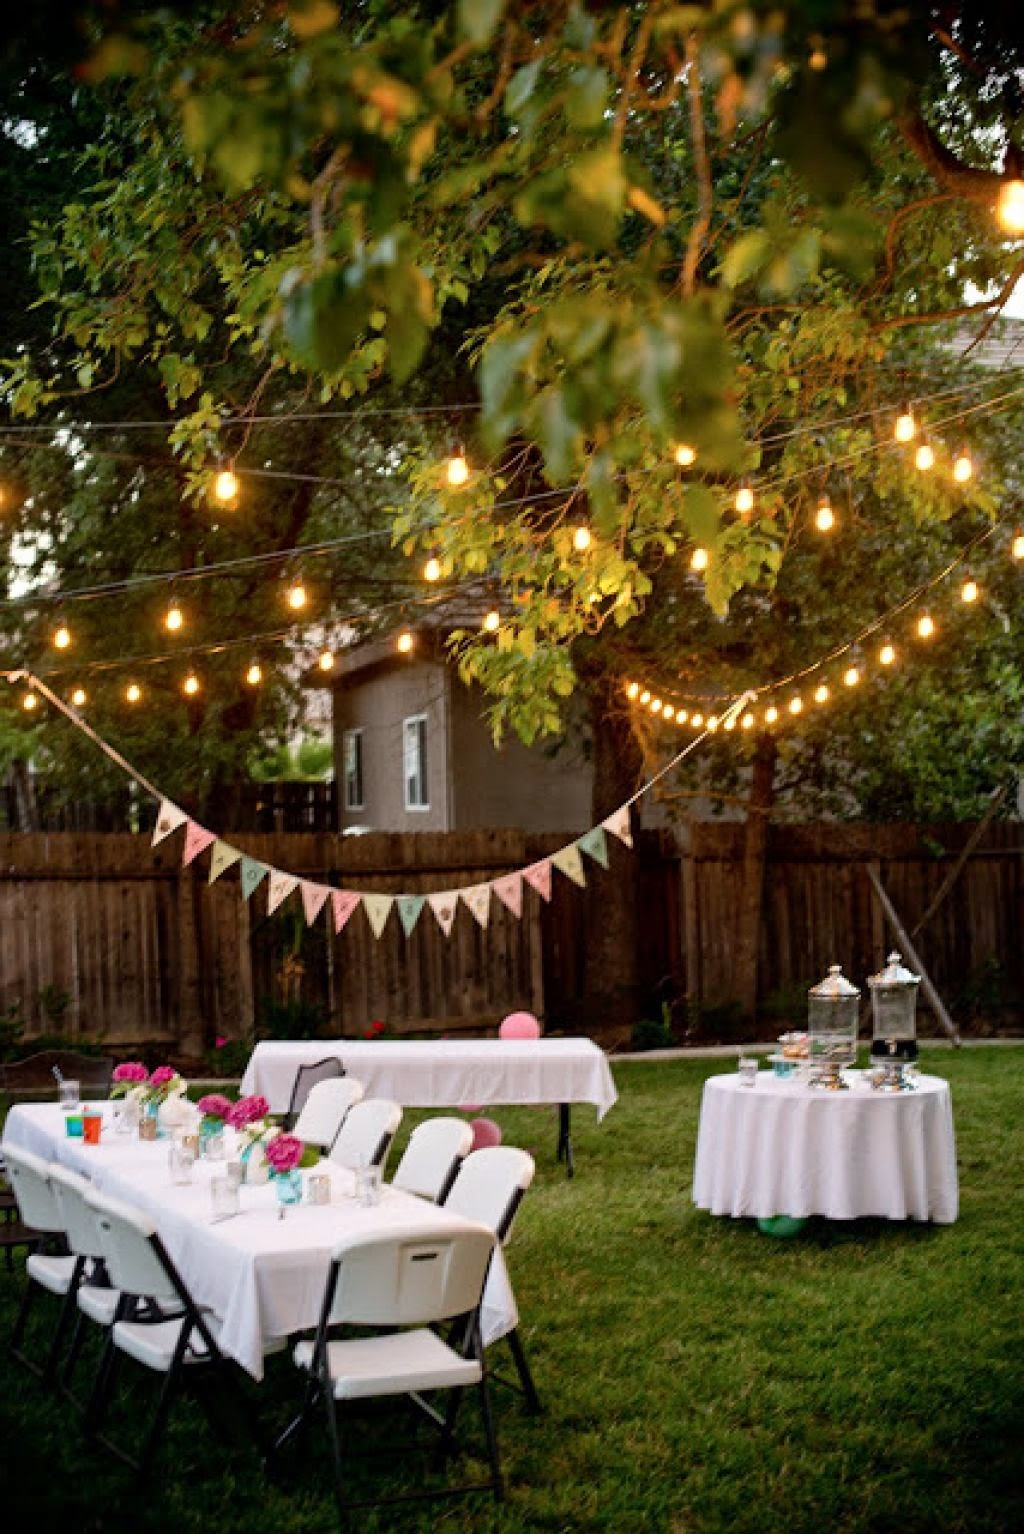 Backyard design ideas; backyard ideas; backyard decorating ideas; backyard party decorating; backyard ideas for party; diy backyard decorating ideas; diy backyard design; diy backyard ideas